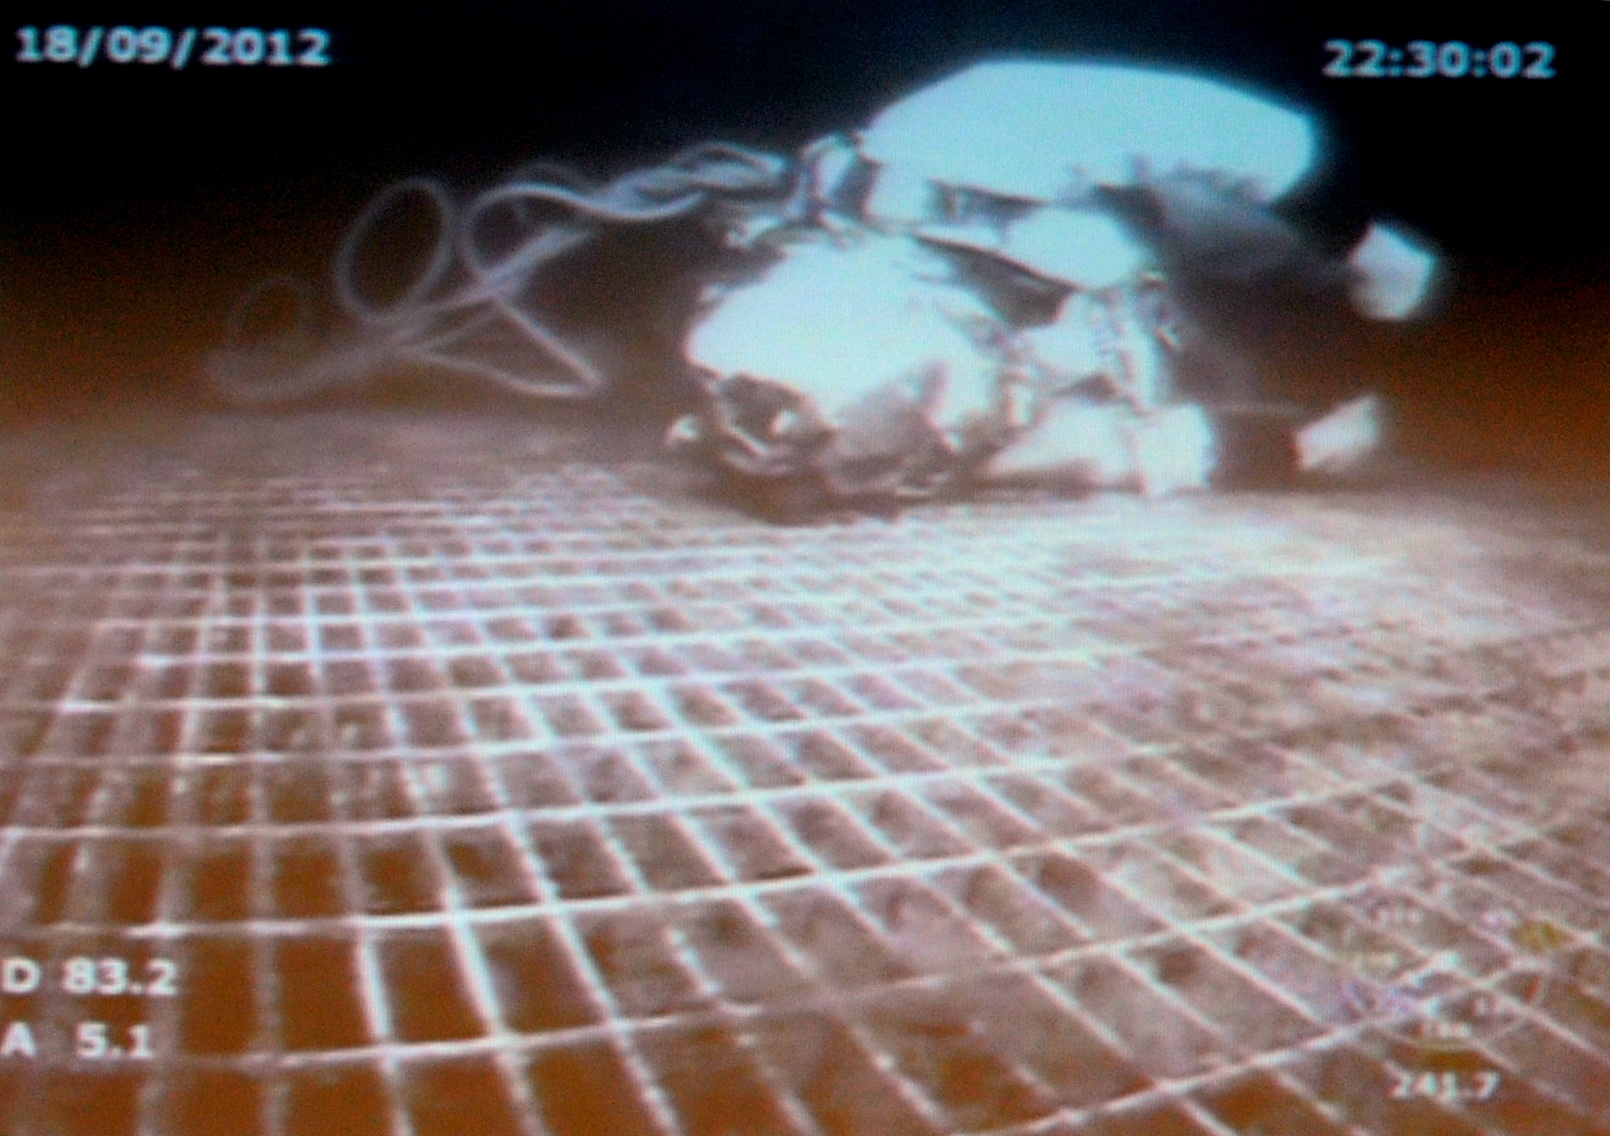 Saturation diver Chris Lemons was stranded on a manifold on the seabed for 40 mins when his lifeline snapped.